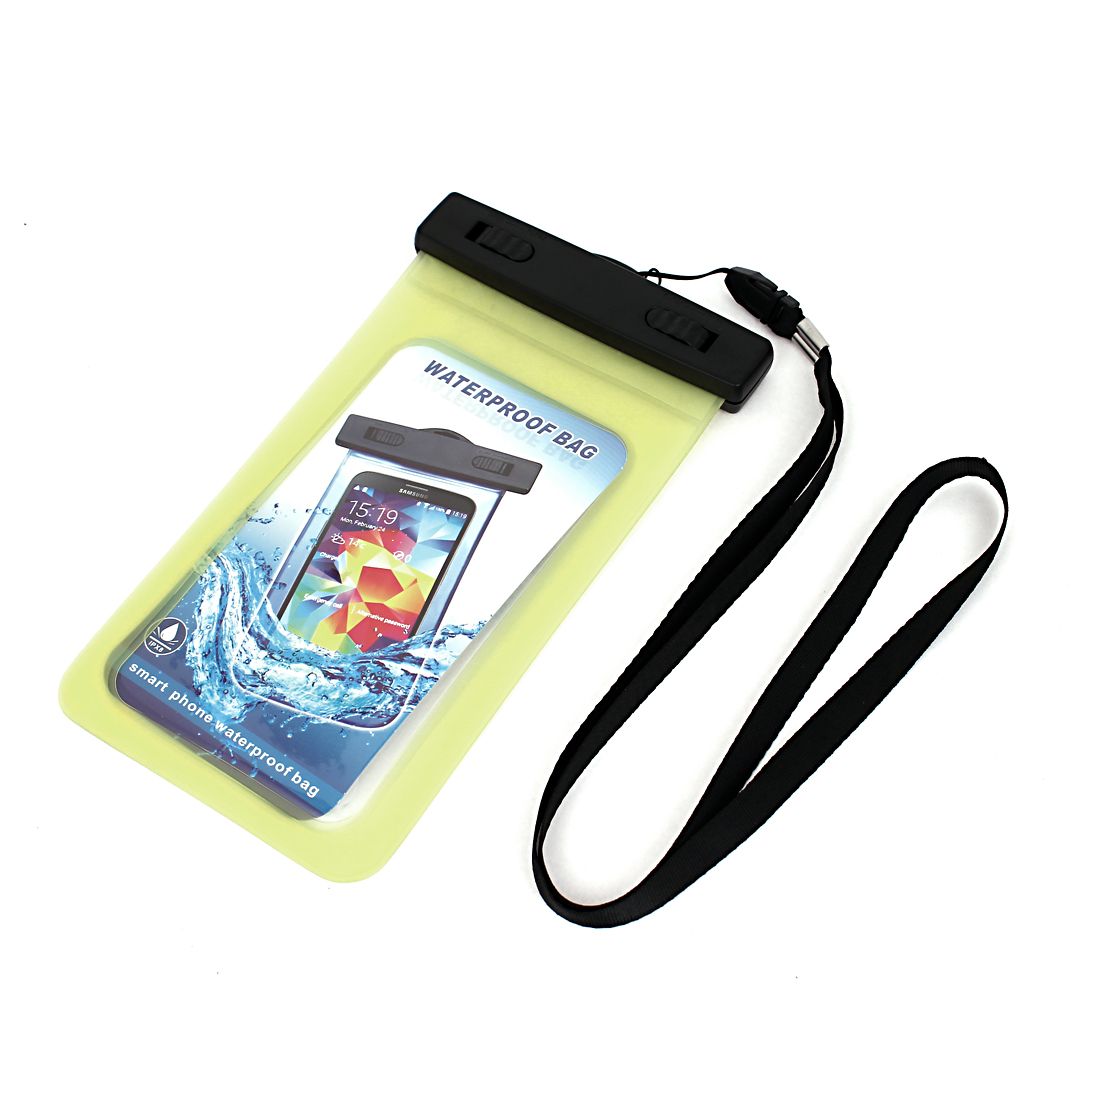 Unique Bargains Waterproof Bag Holder Pouch Yellow for 5.5  Mobile Phone w Neck Strap